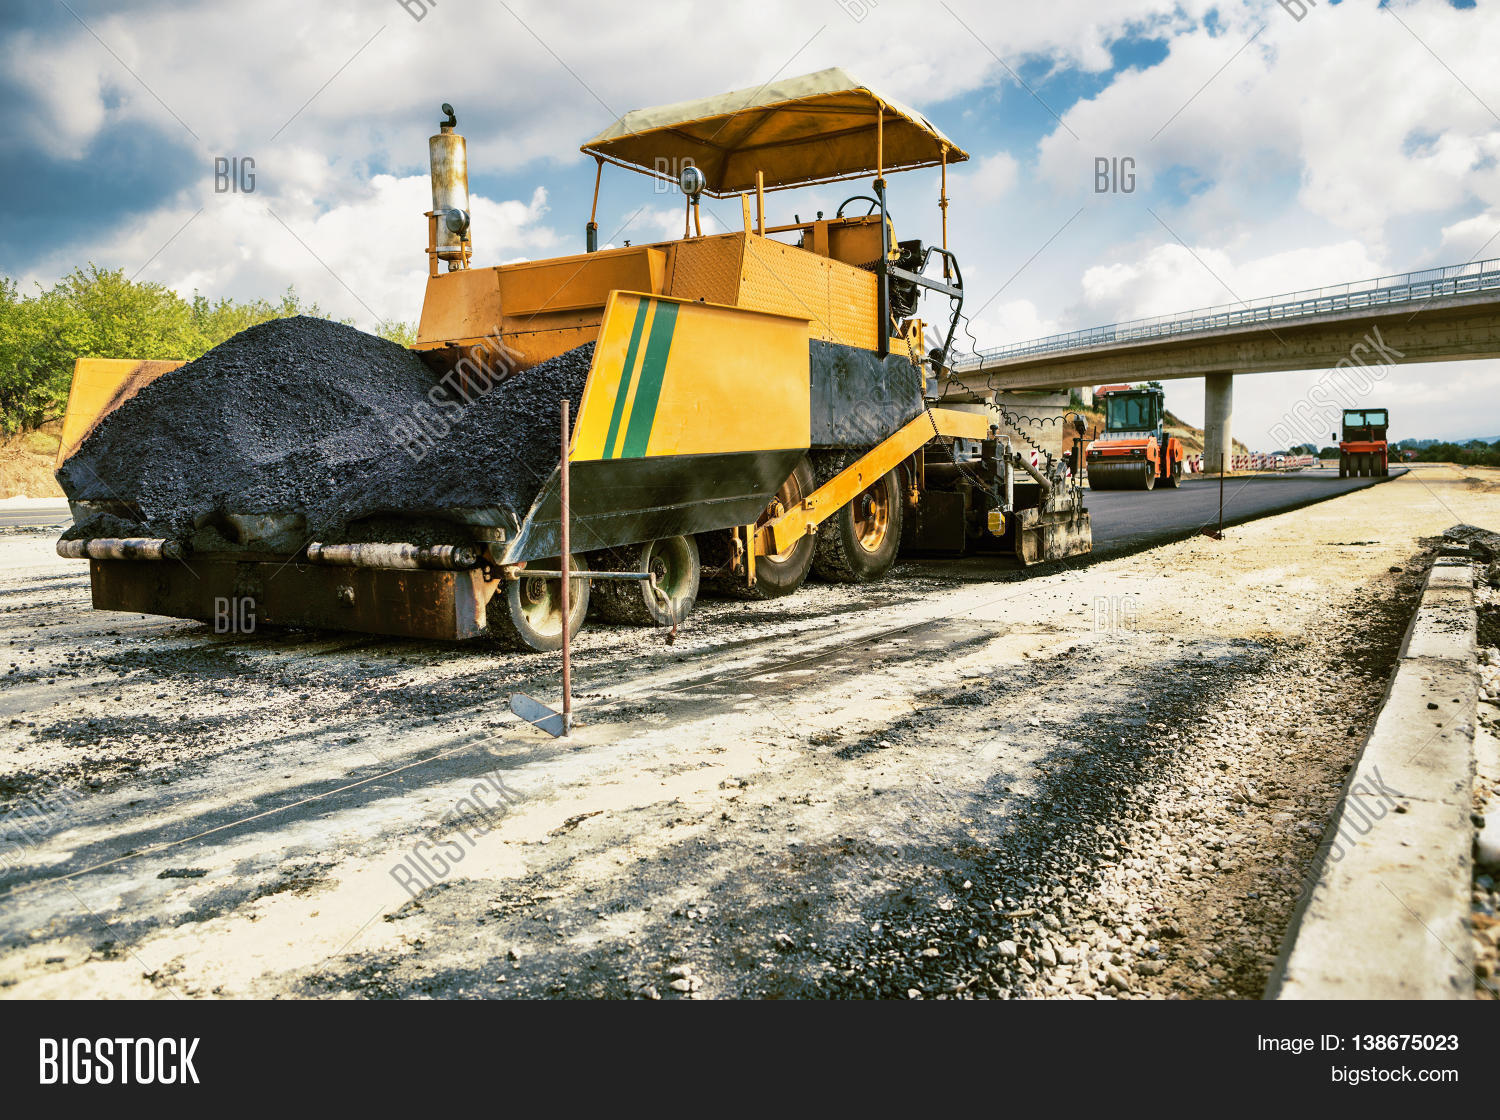 new road pavement machine laying fresh asphalt or bitumen on top of the gravel base